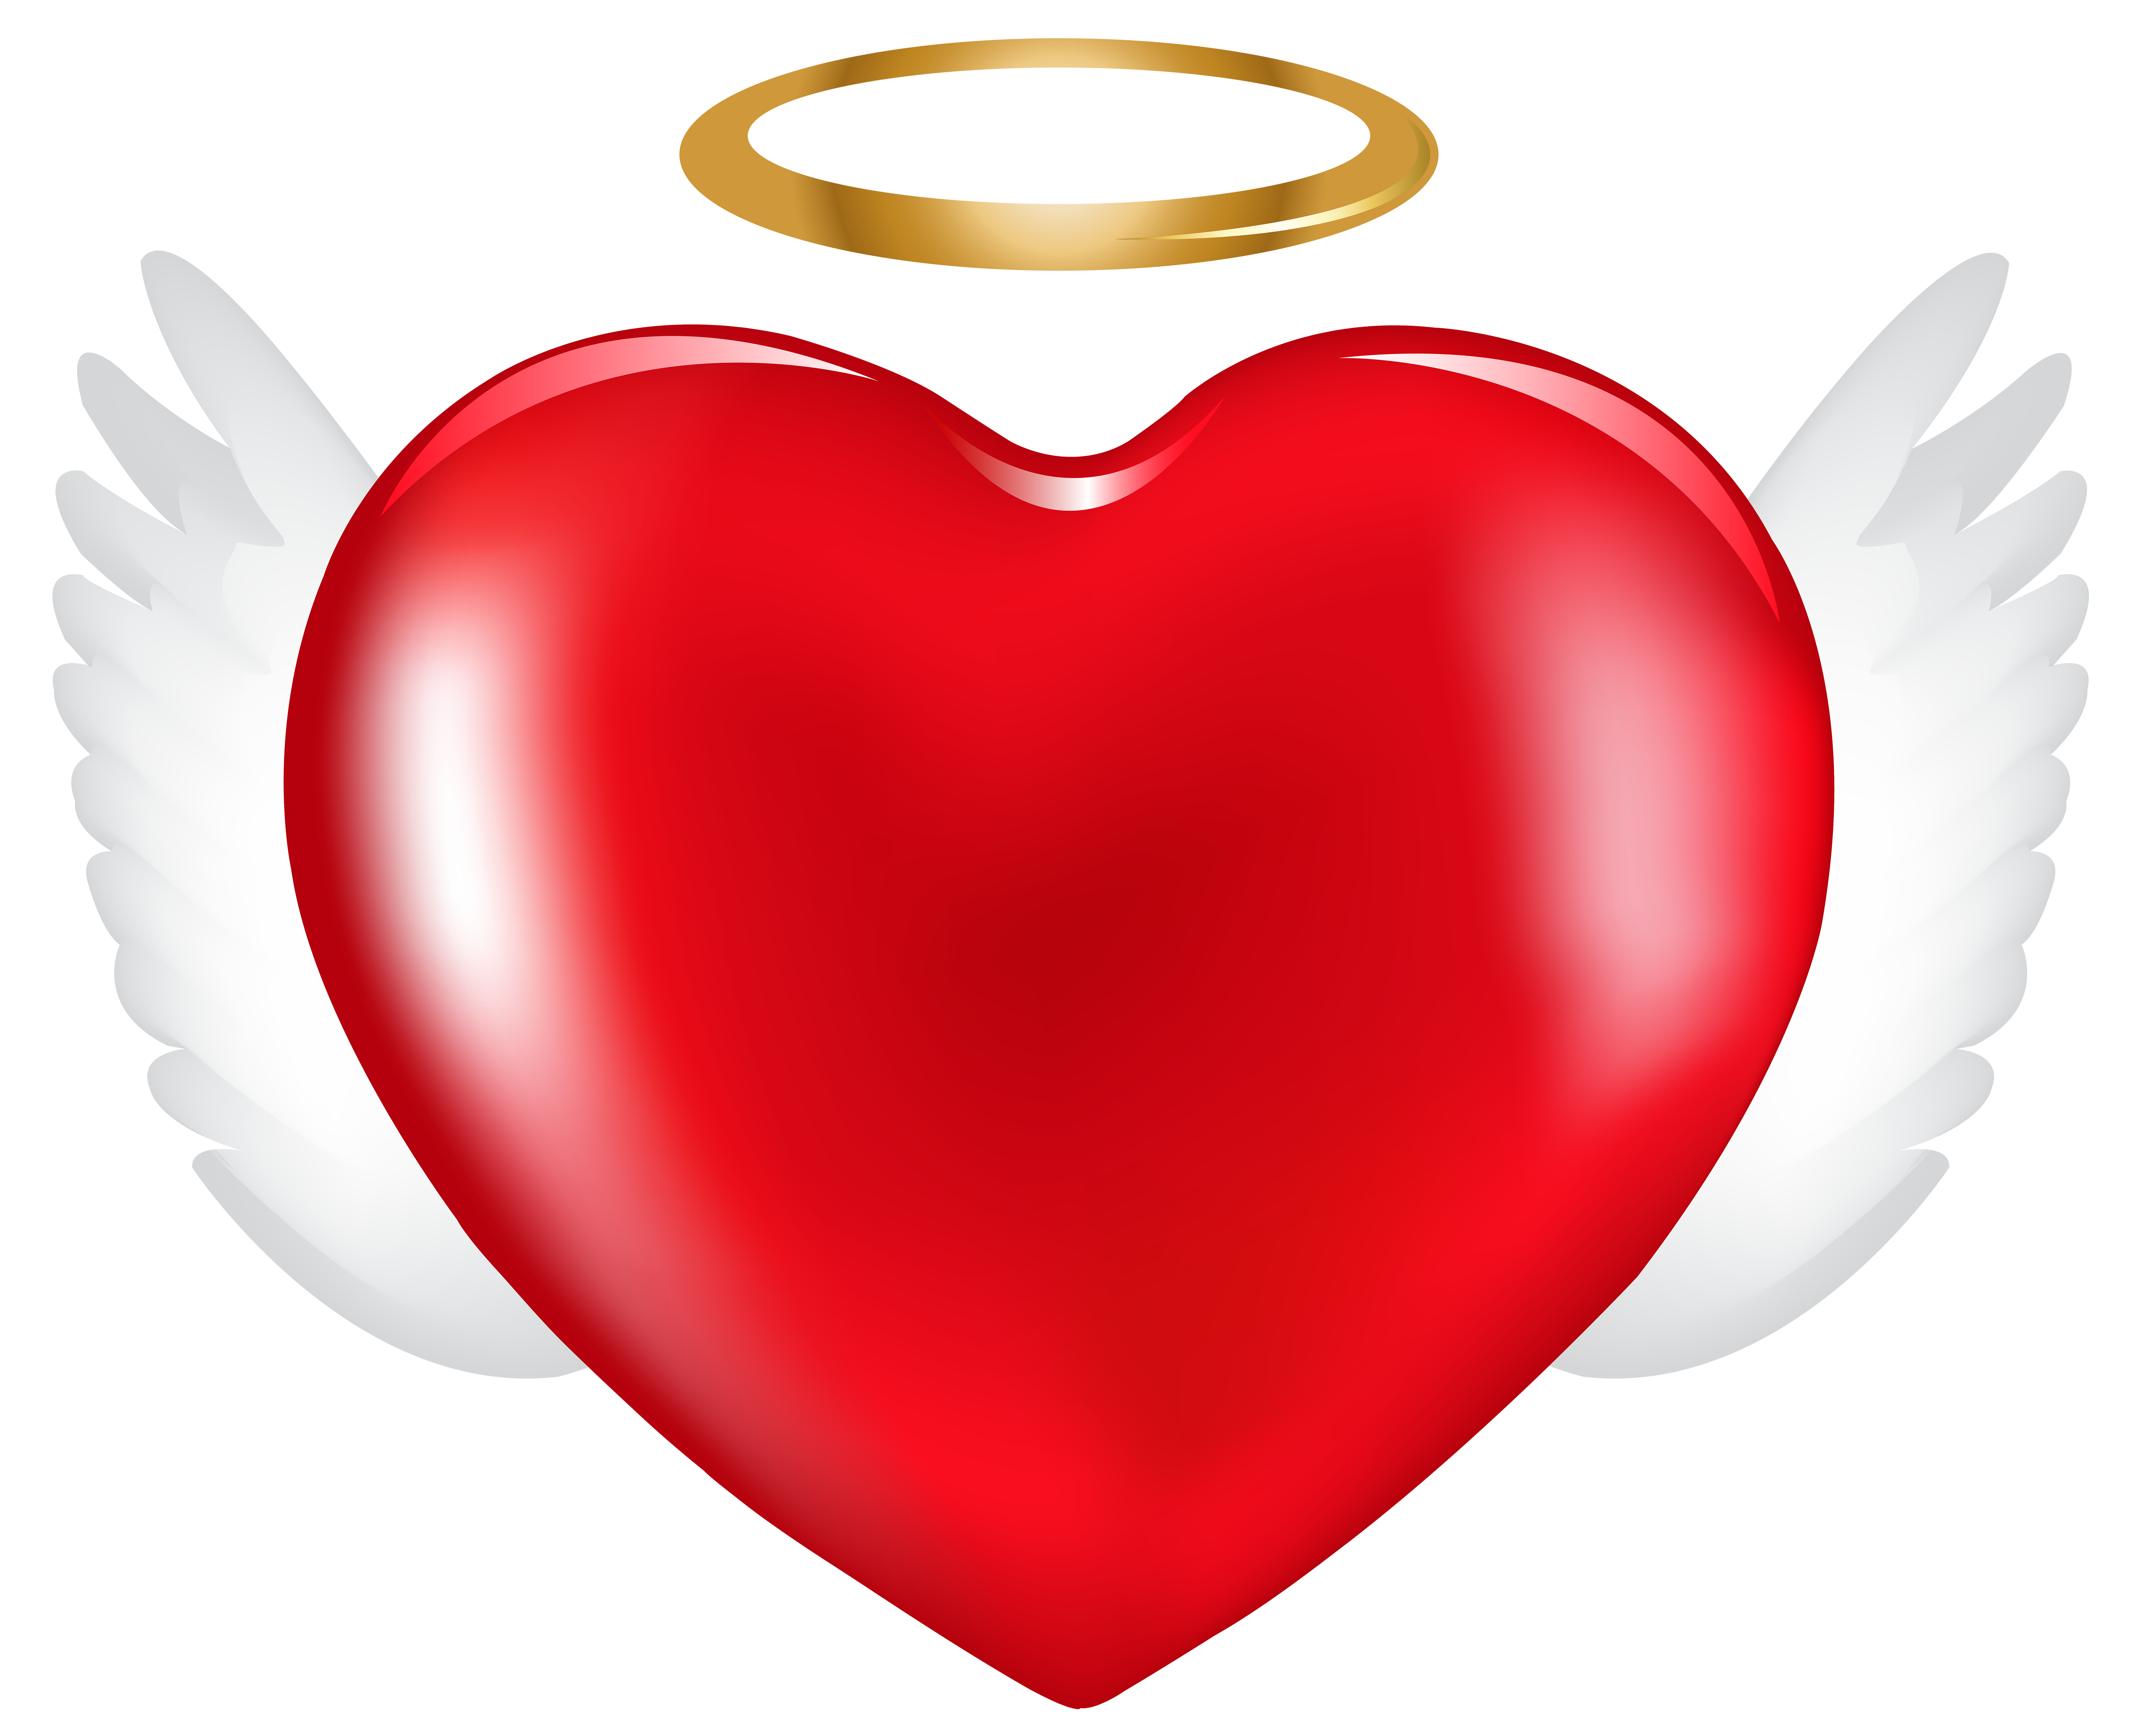 Clipart hearts halloween. Angel heart png clip